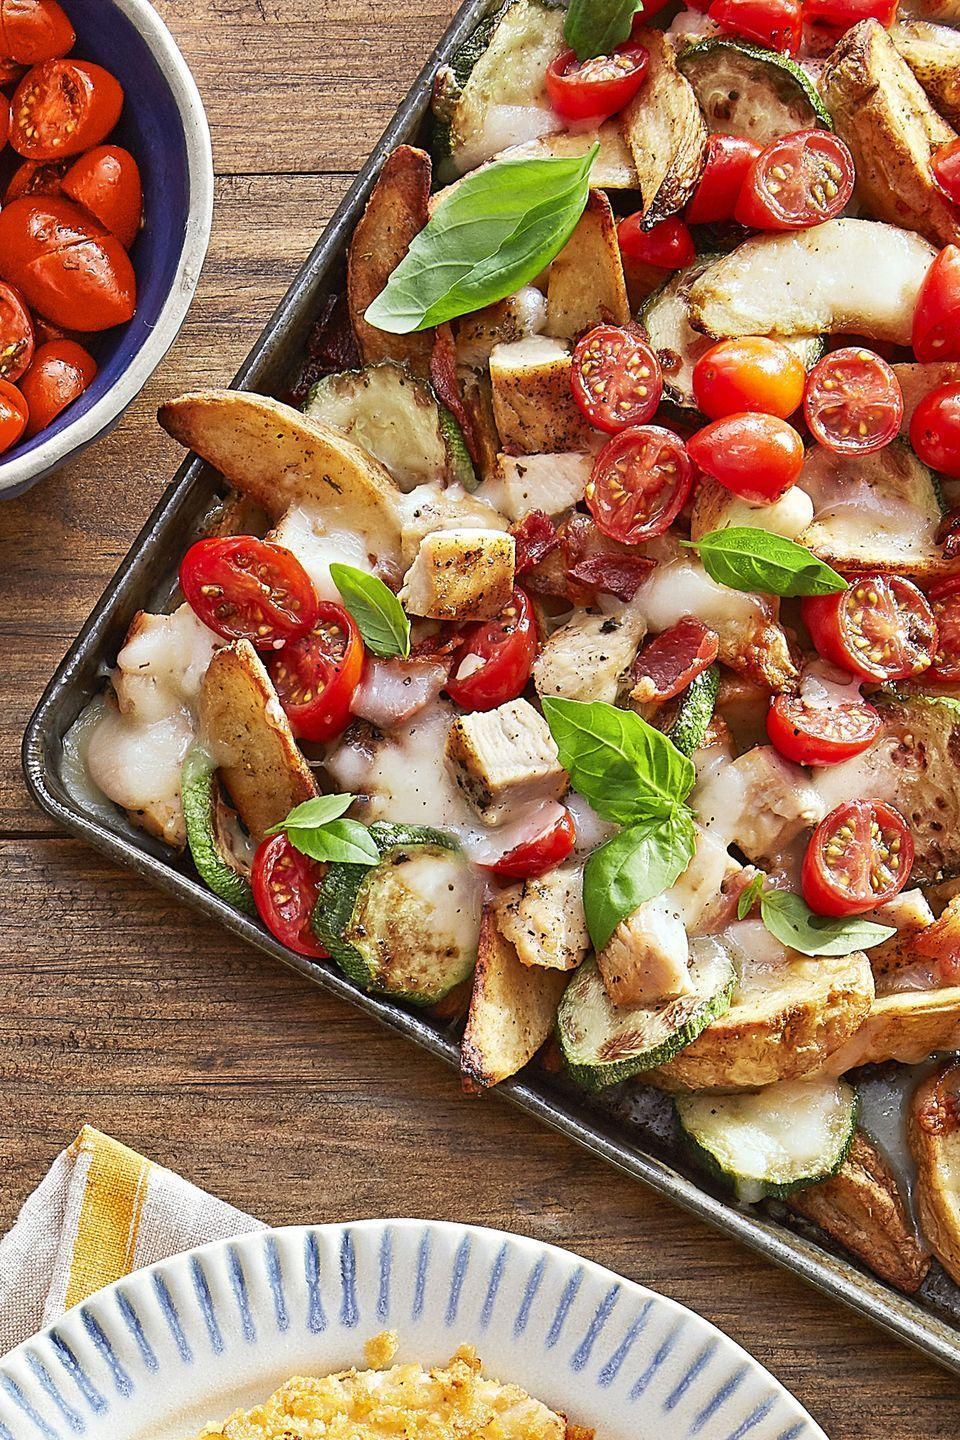 "<p>Tomatoes, basil, and melted mozz upgrade potato wedges to the max.</p><p><strong><a href=""https://www.countryliving.com/food-drinks/recipes/a44281/italian-potato-wedge-nachos-recipe/"" rel=""nofollow noopener"" target=""_blank"" data-ylk=""slk:Get the recipe"" class=""link rapid-noclick-resp"">Get the recipe</a>.</strong></p>"